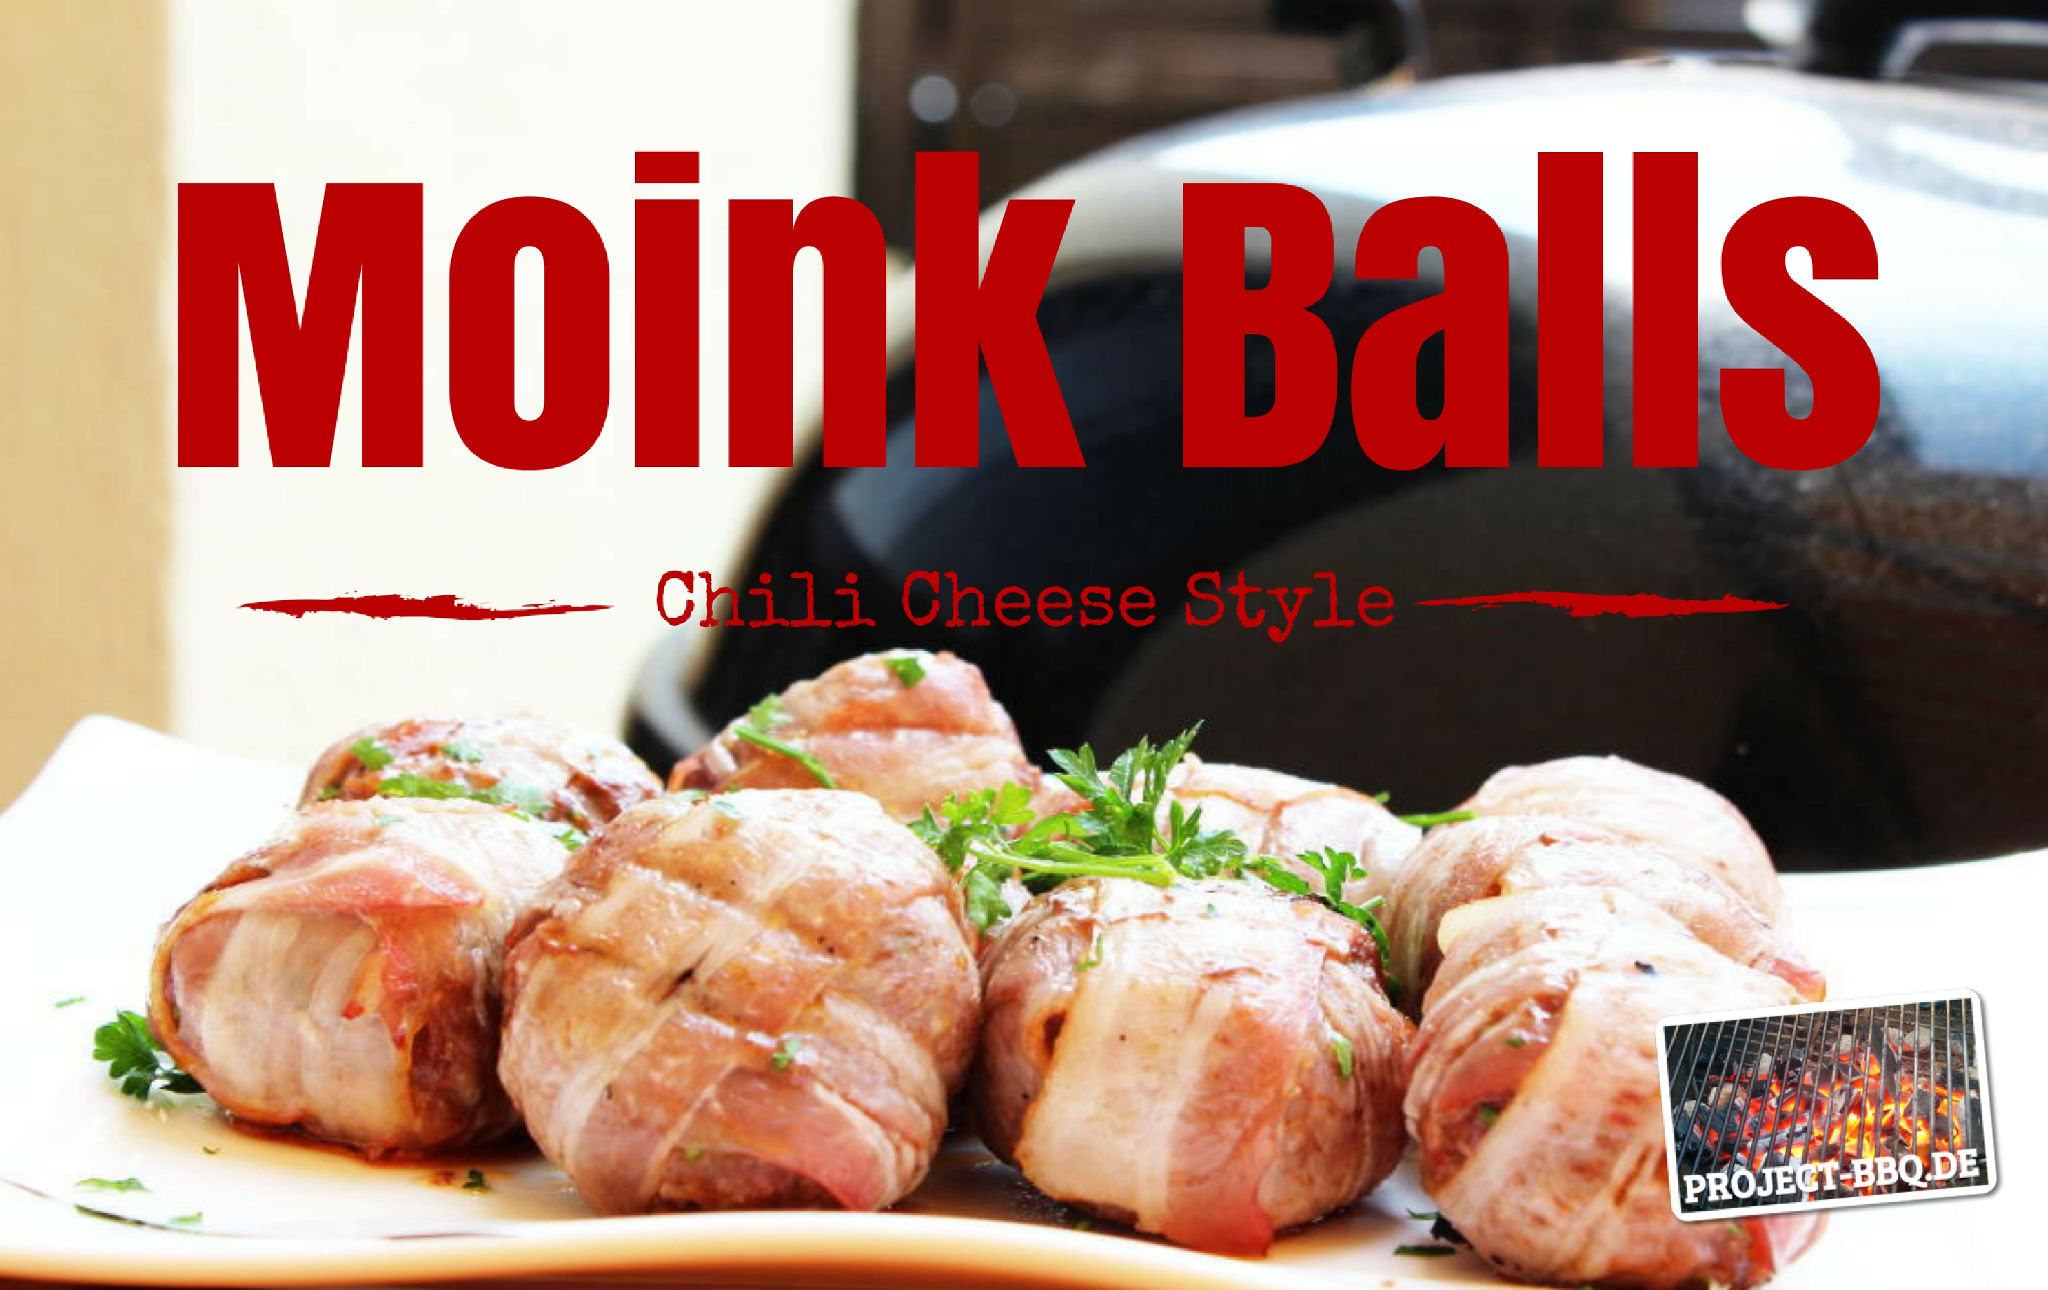 Chili Cheese Moink Balls